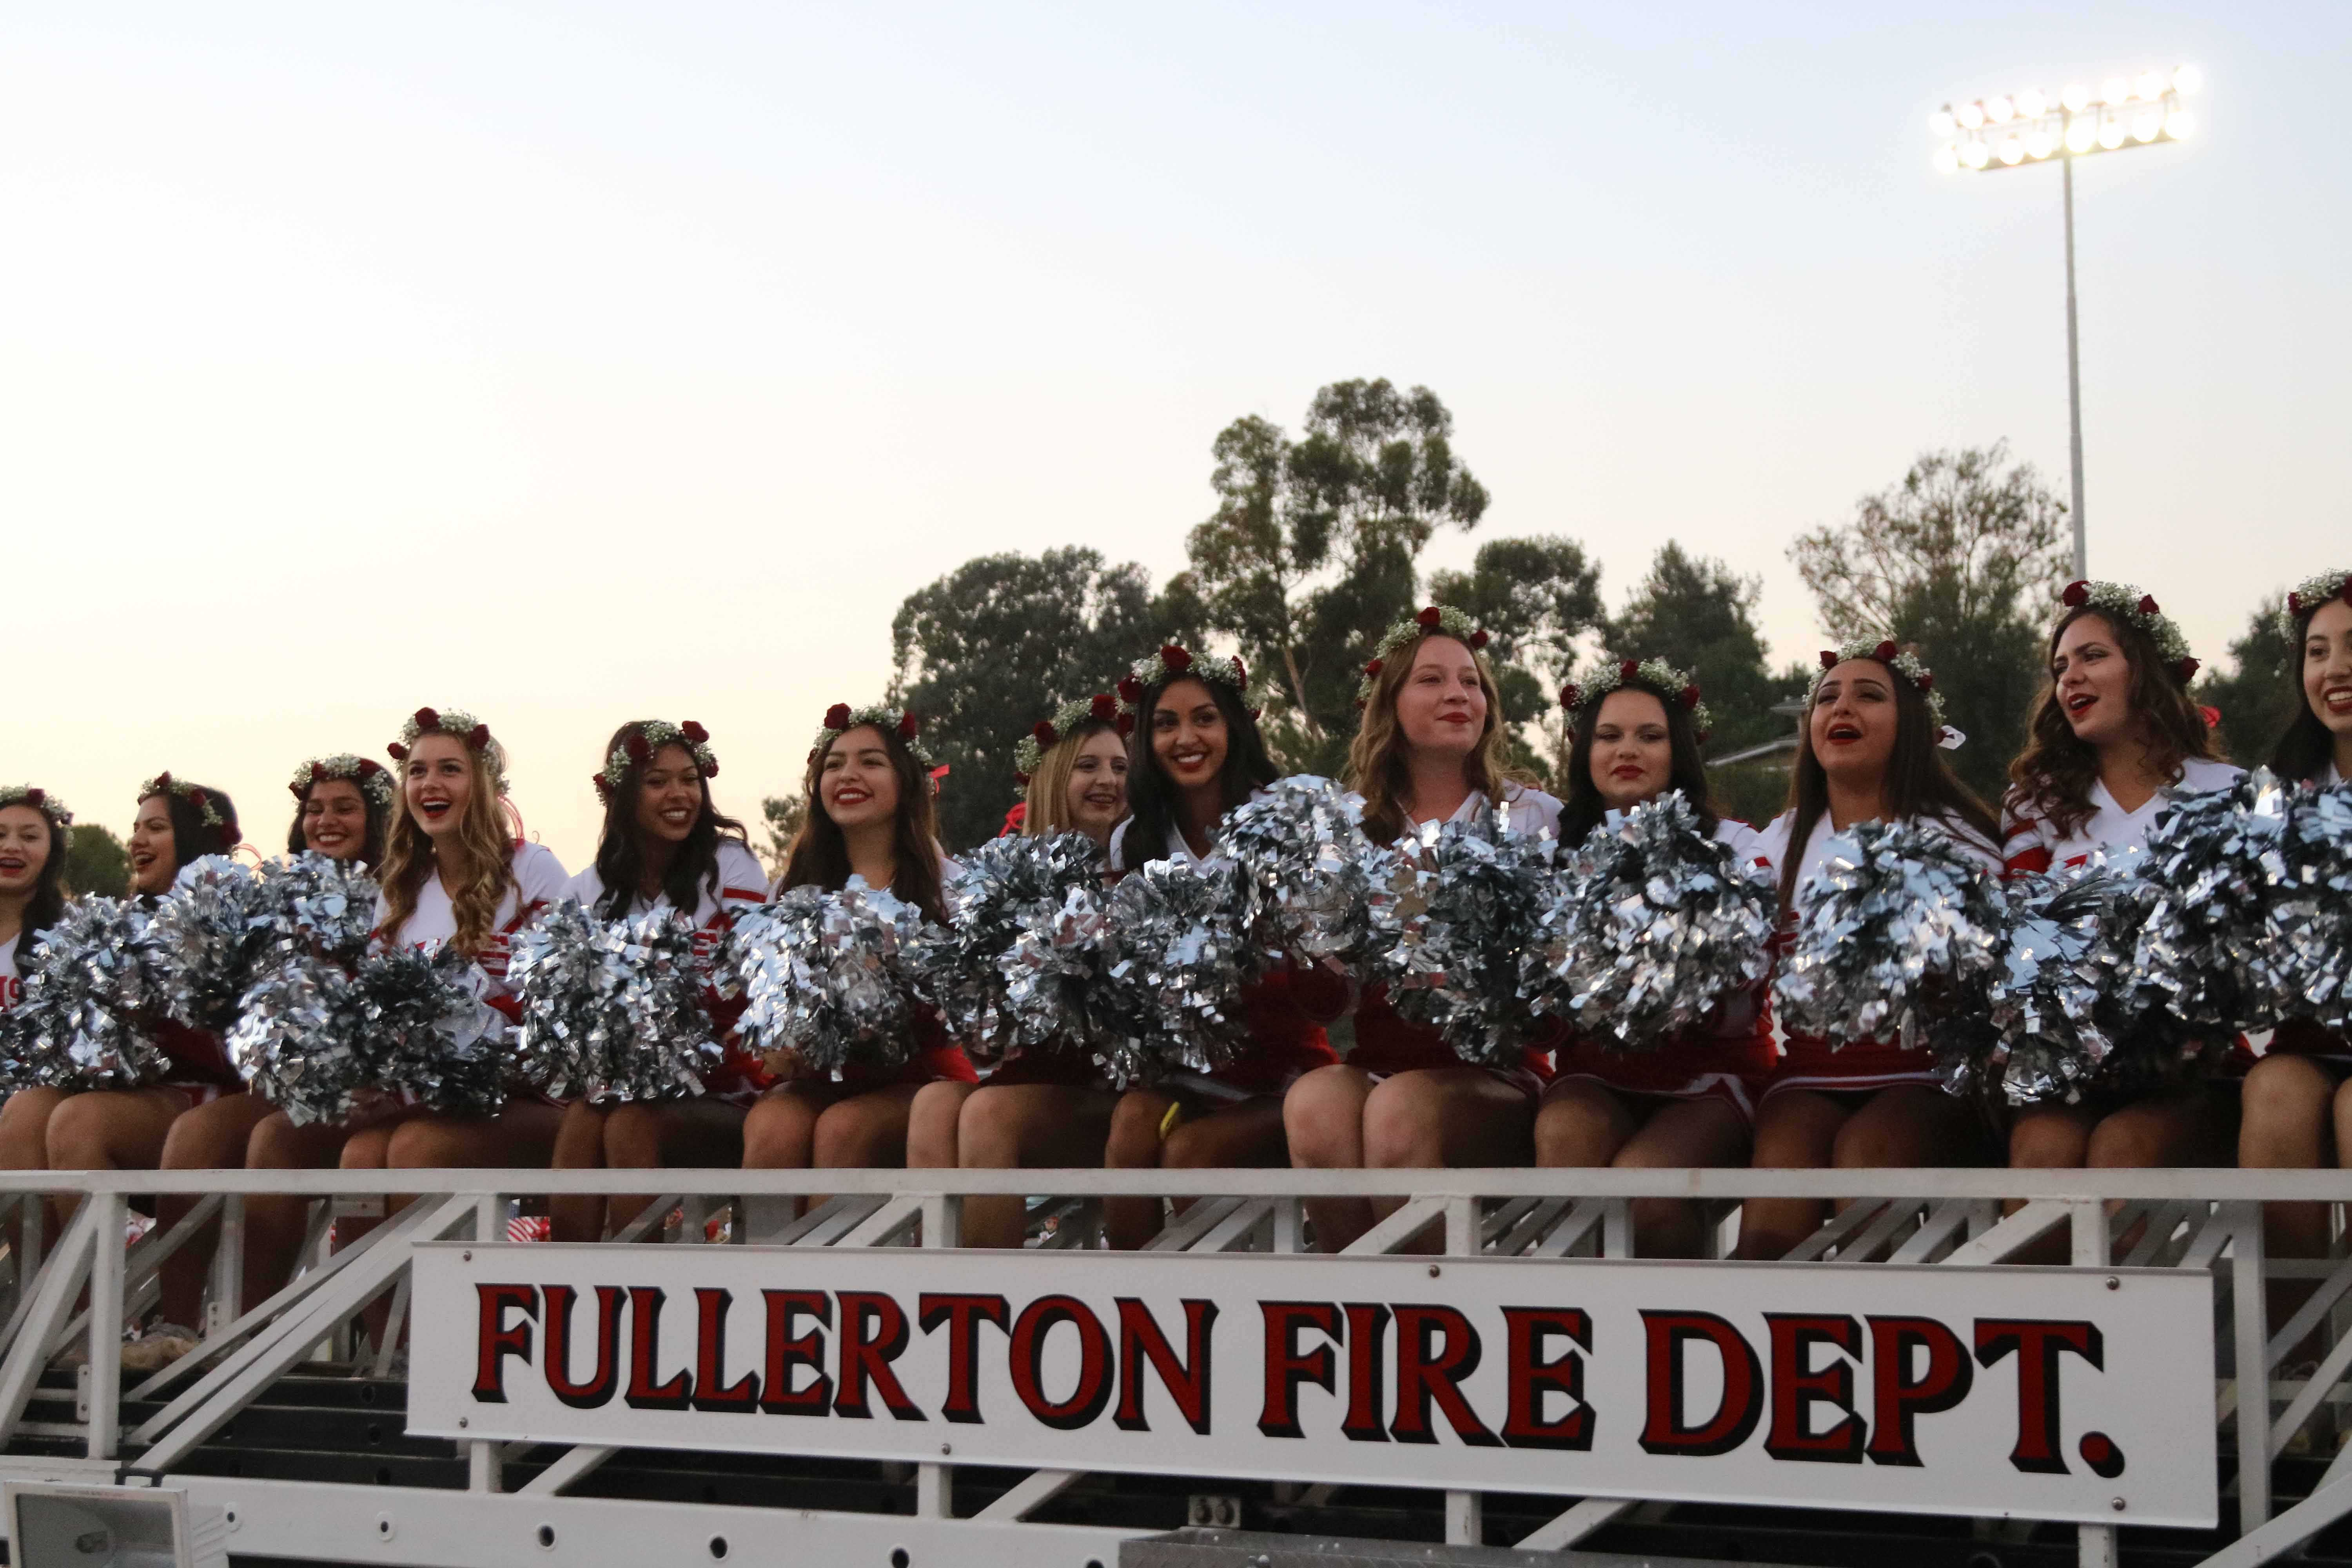 FUHS+Varsity+Cheer+rides+past+the+crowd+on+a+firetruck+at+the+Homecoming+game+on+Sept.+16.++Photo+by+Emily+Caluya.+